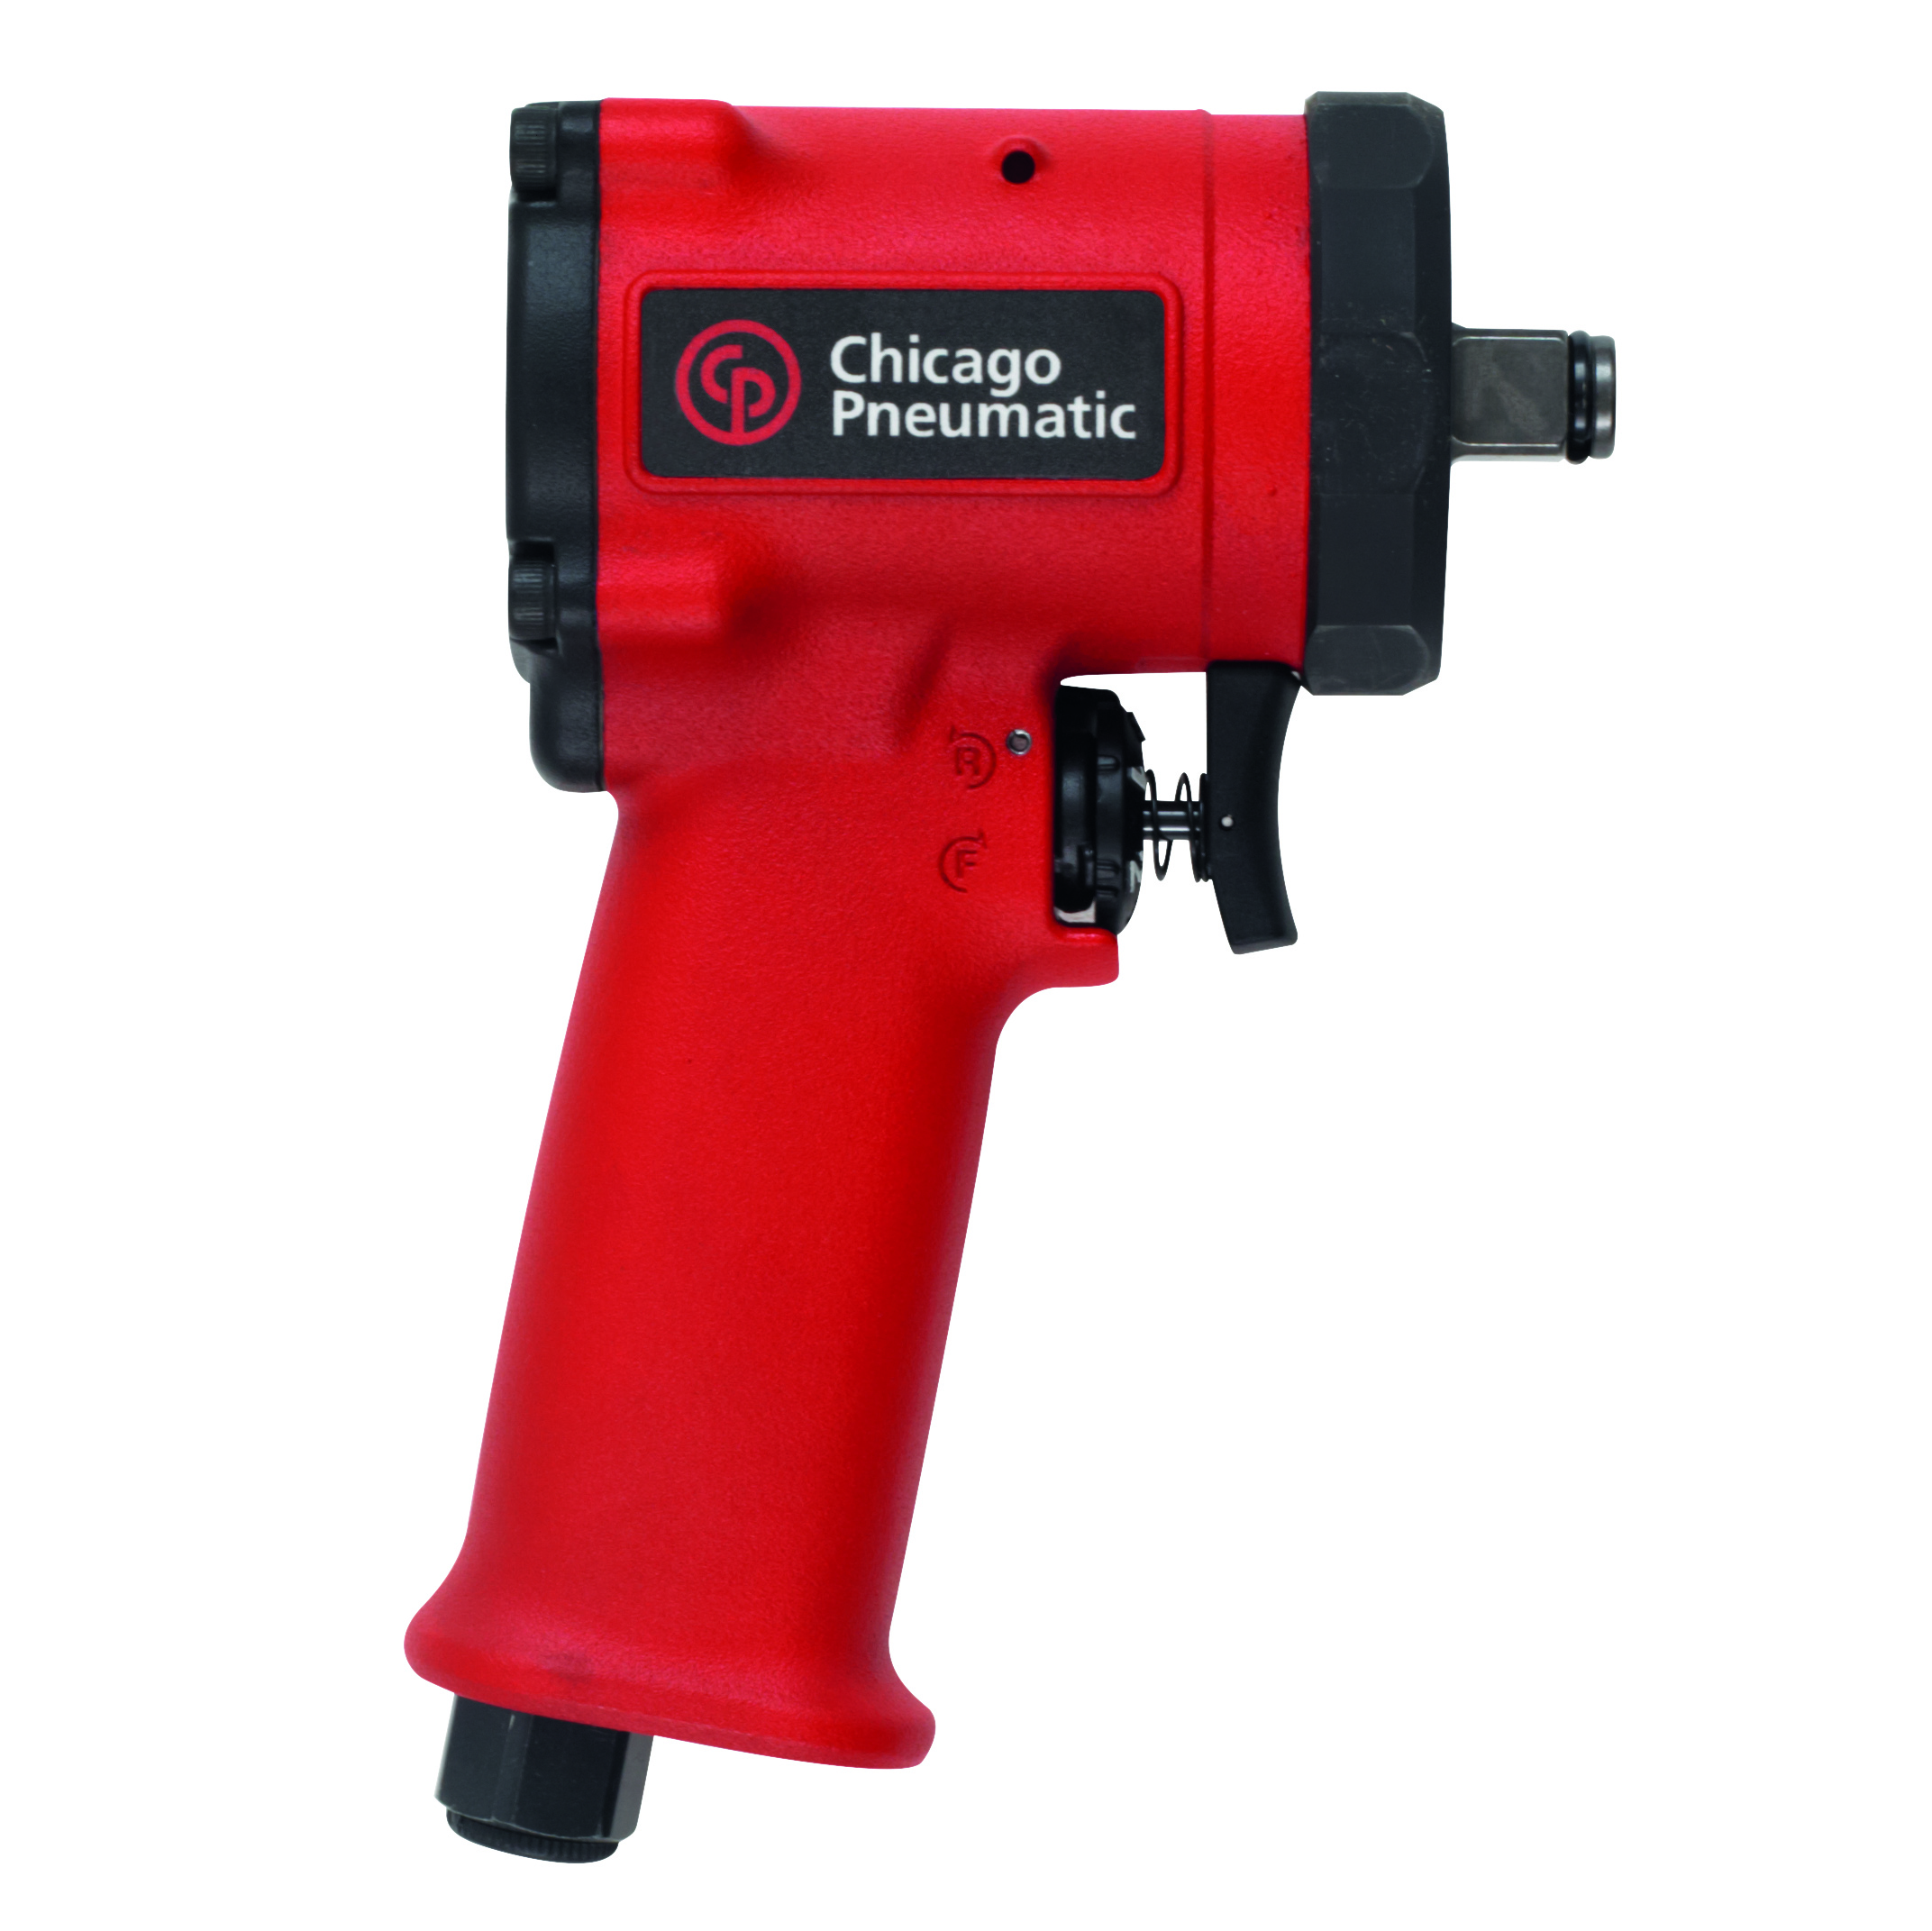 Chicago-Pneumatic-offers-compact-impact-wrench